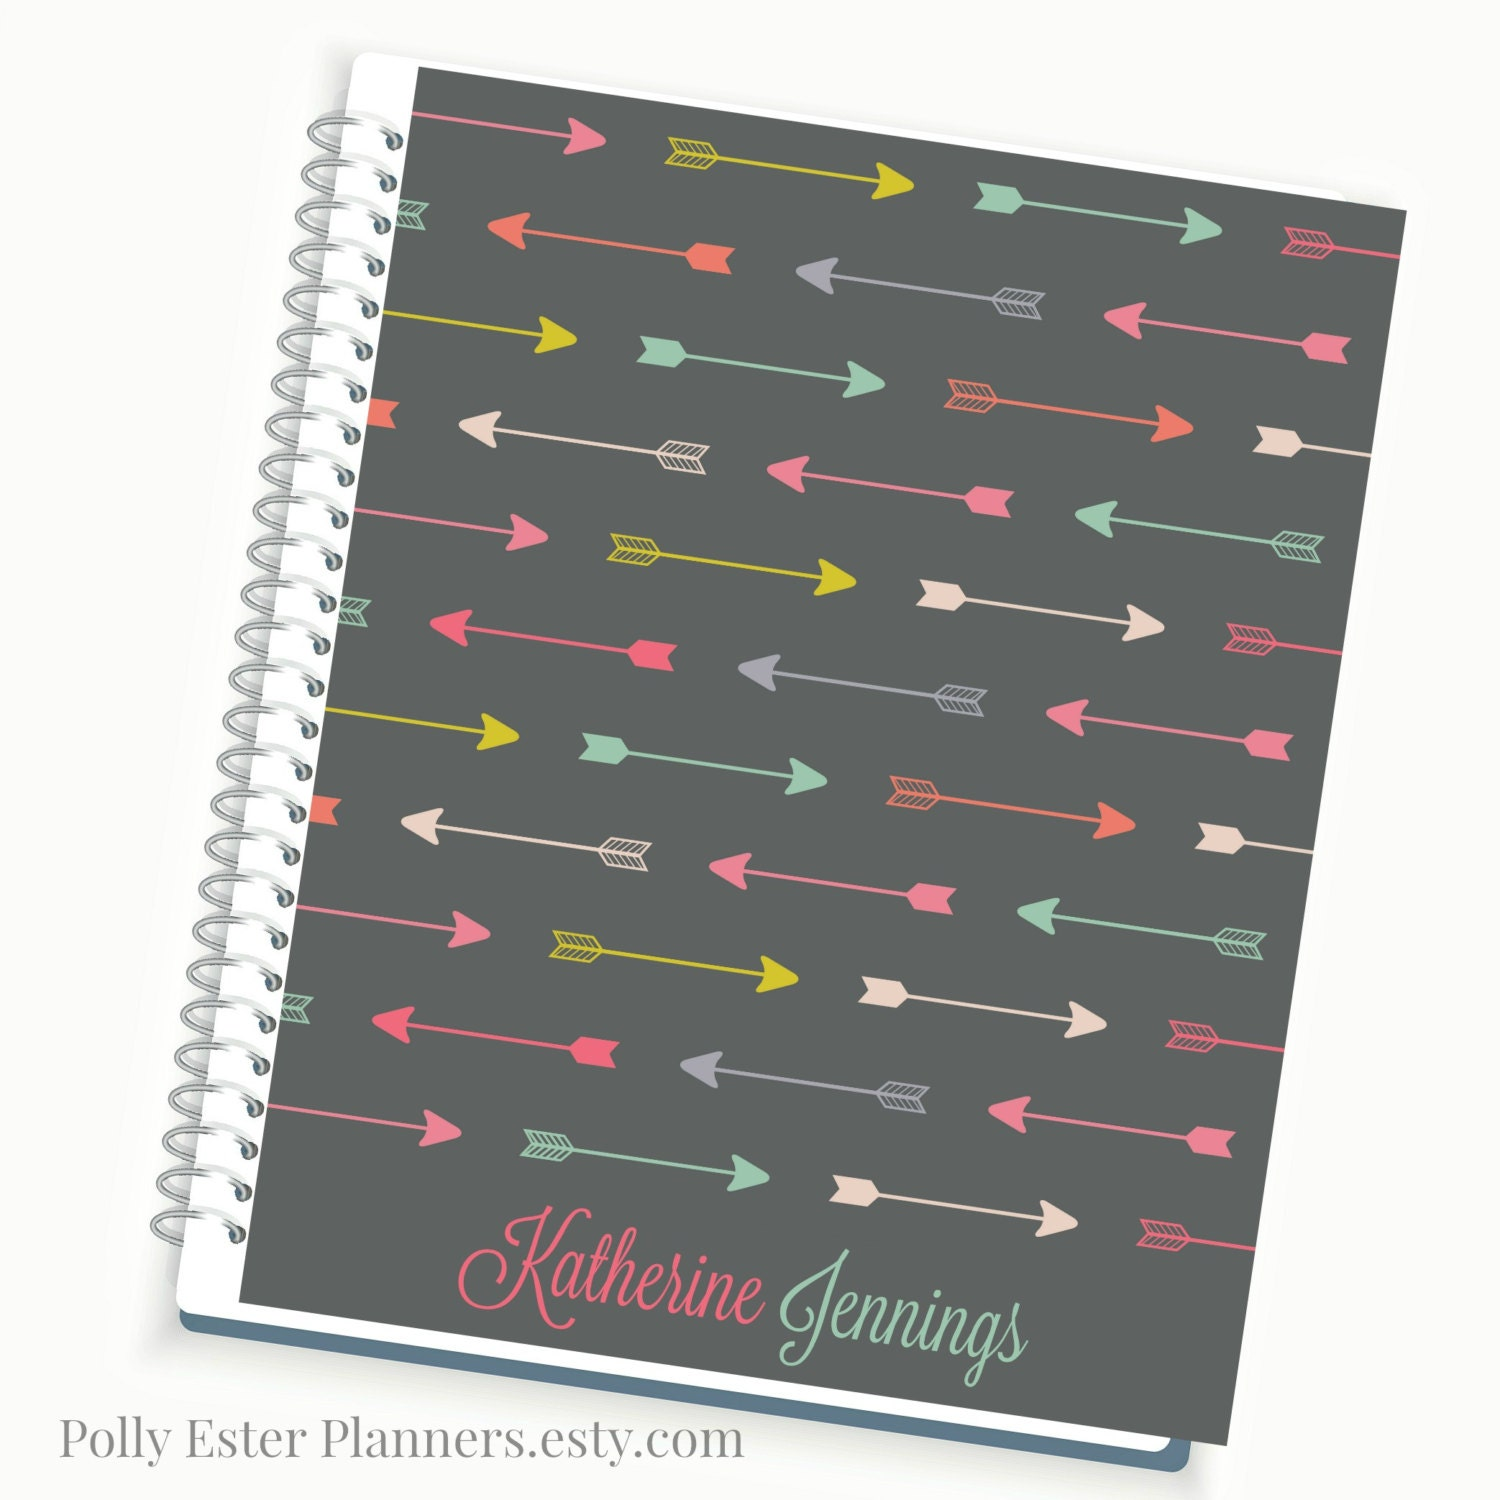 Daily planner 2018 personalized planner multi color arrow for Custom photo planner